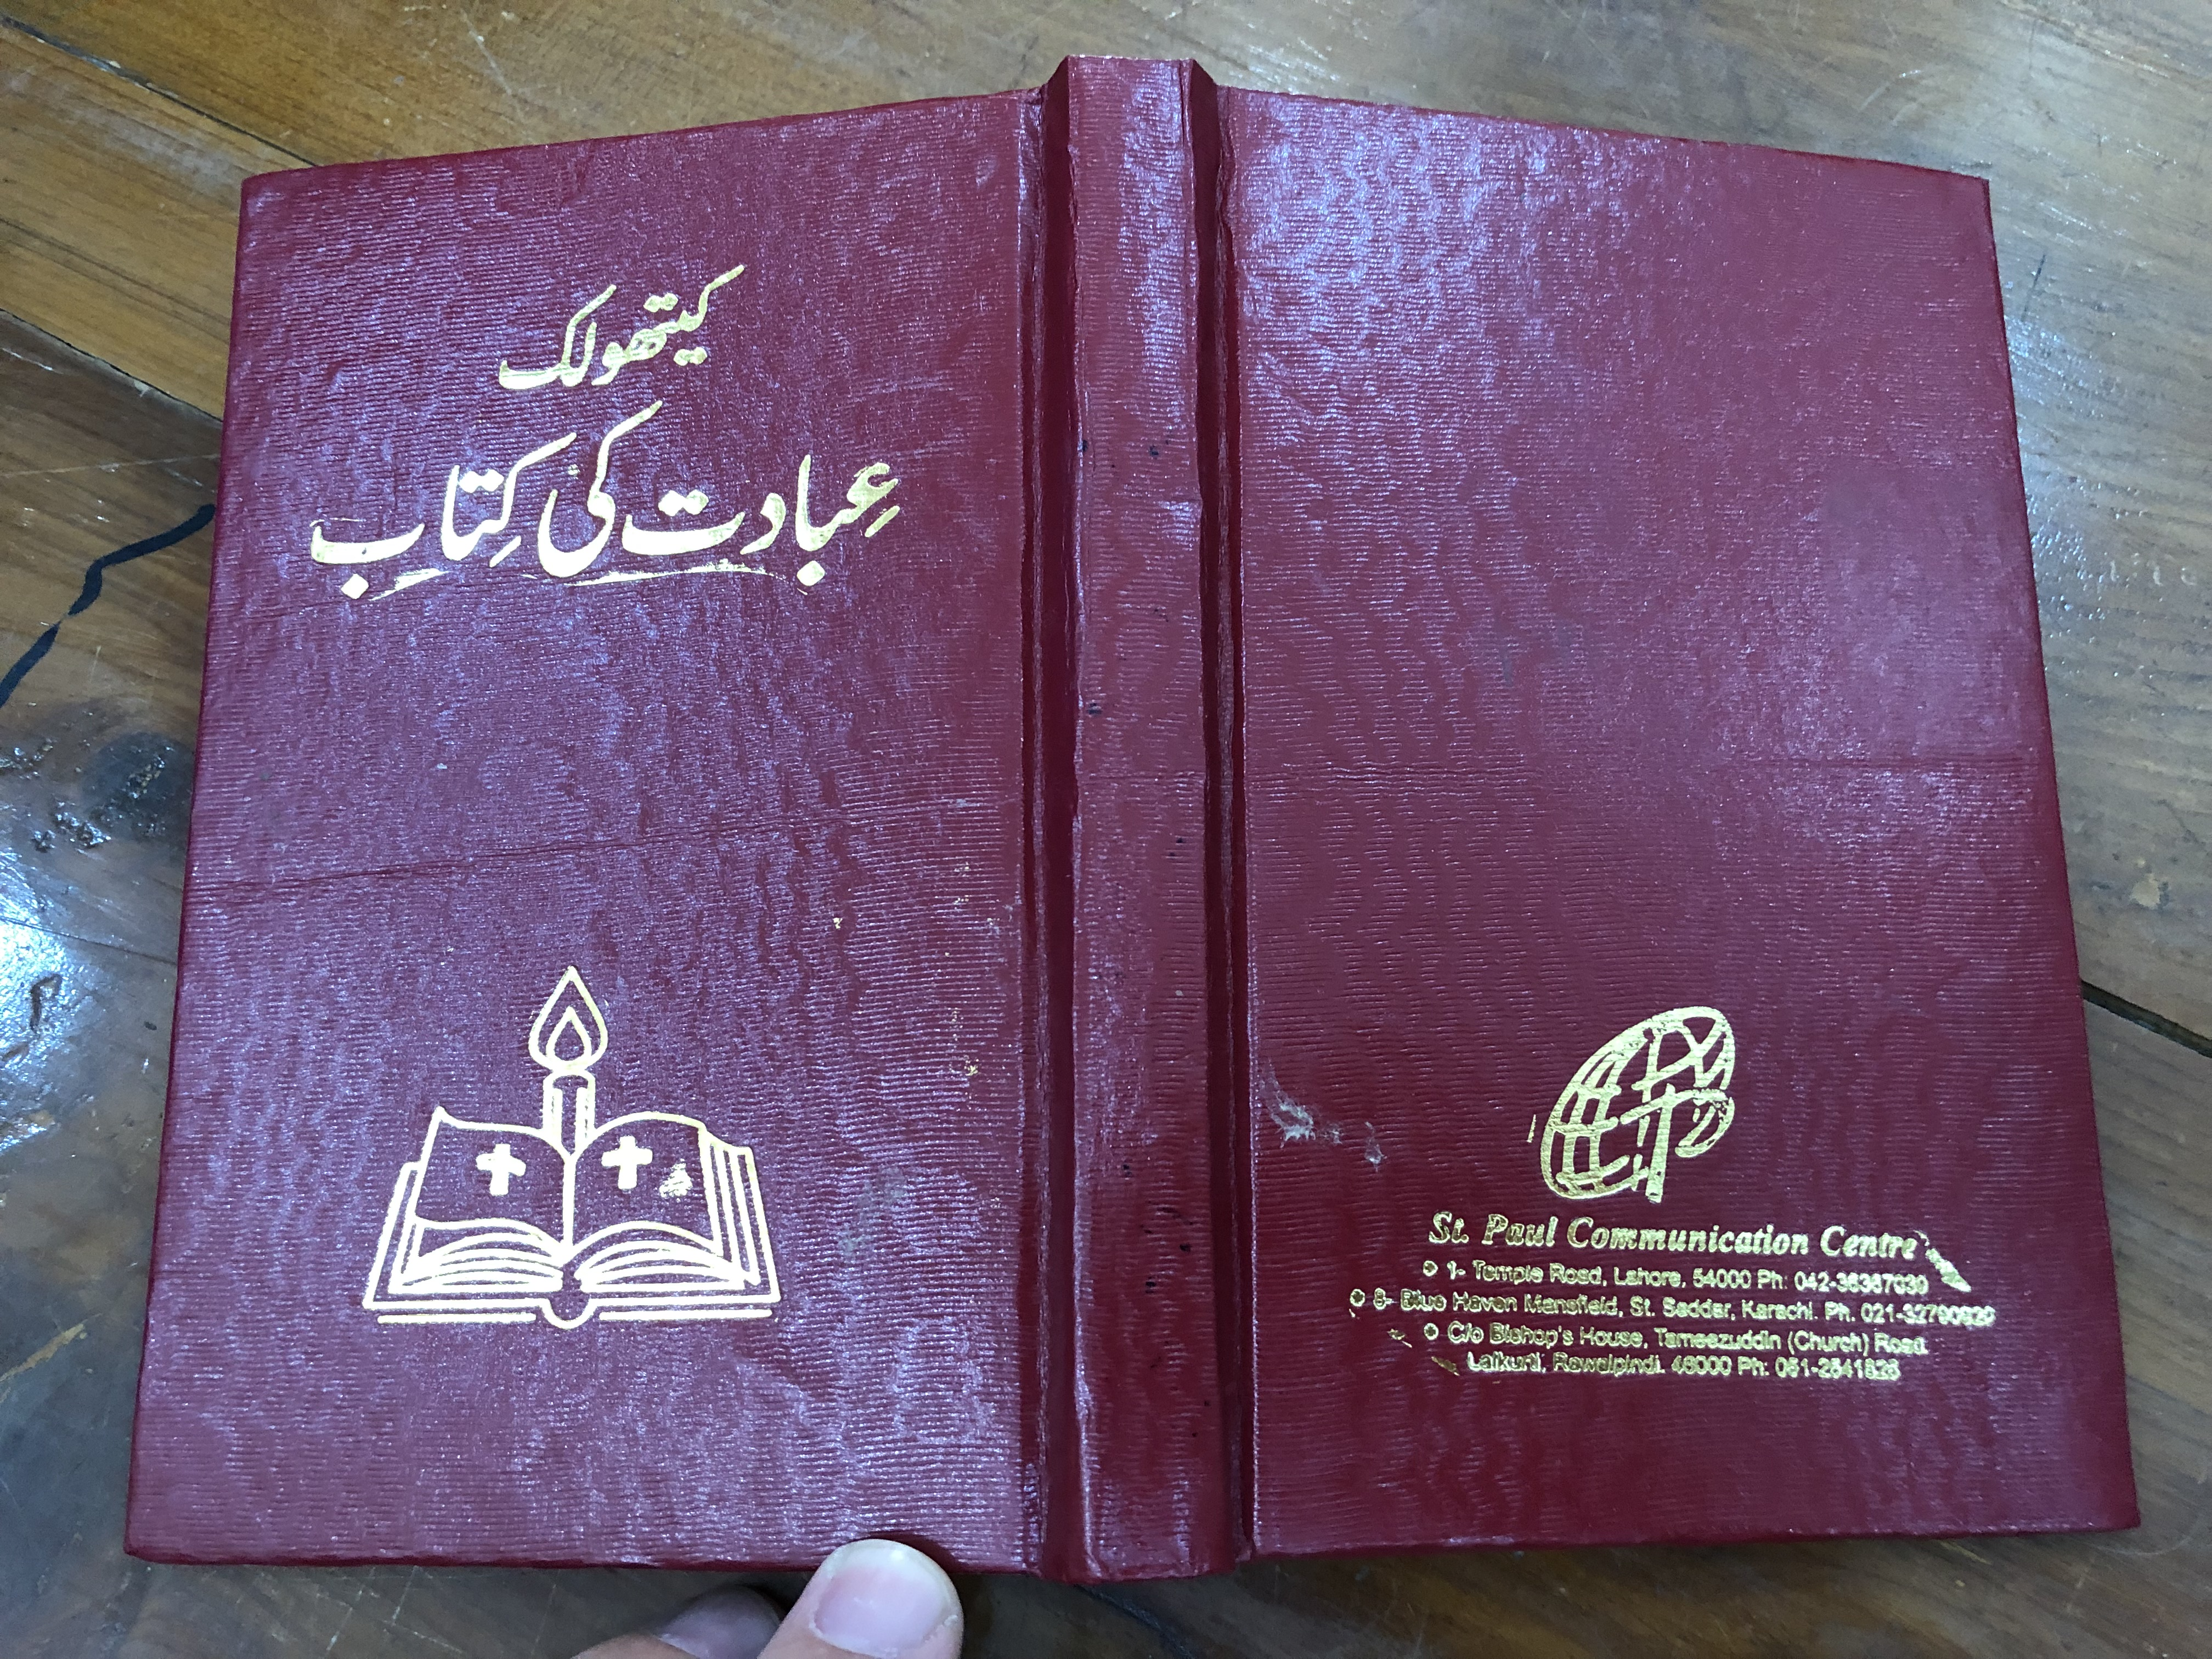 catholic-urdu-prayer-book-compact-size-st.-paul-communication-centre-hardcover-2012-13-.jpg